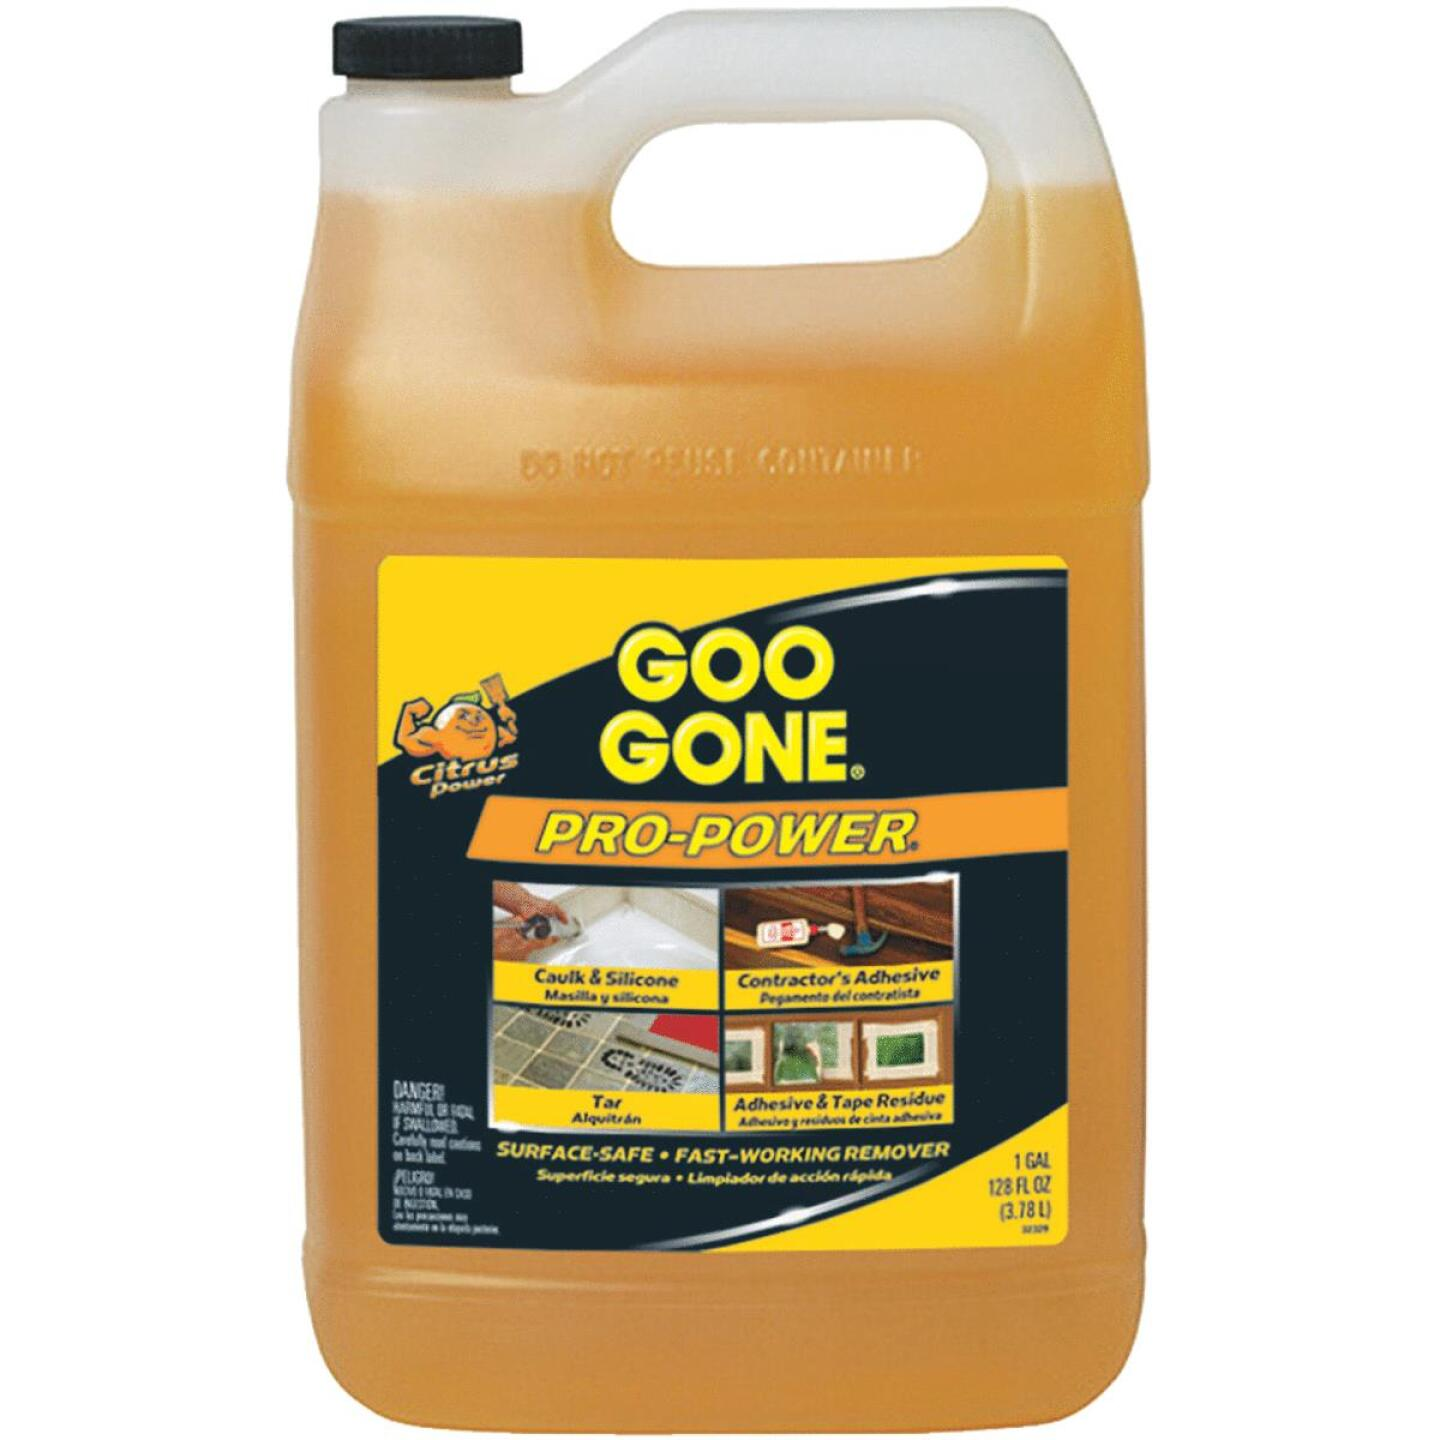 Goo Gone 1 Gal. Pro-Power Adhesive Remover Image 290